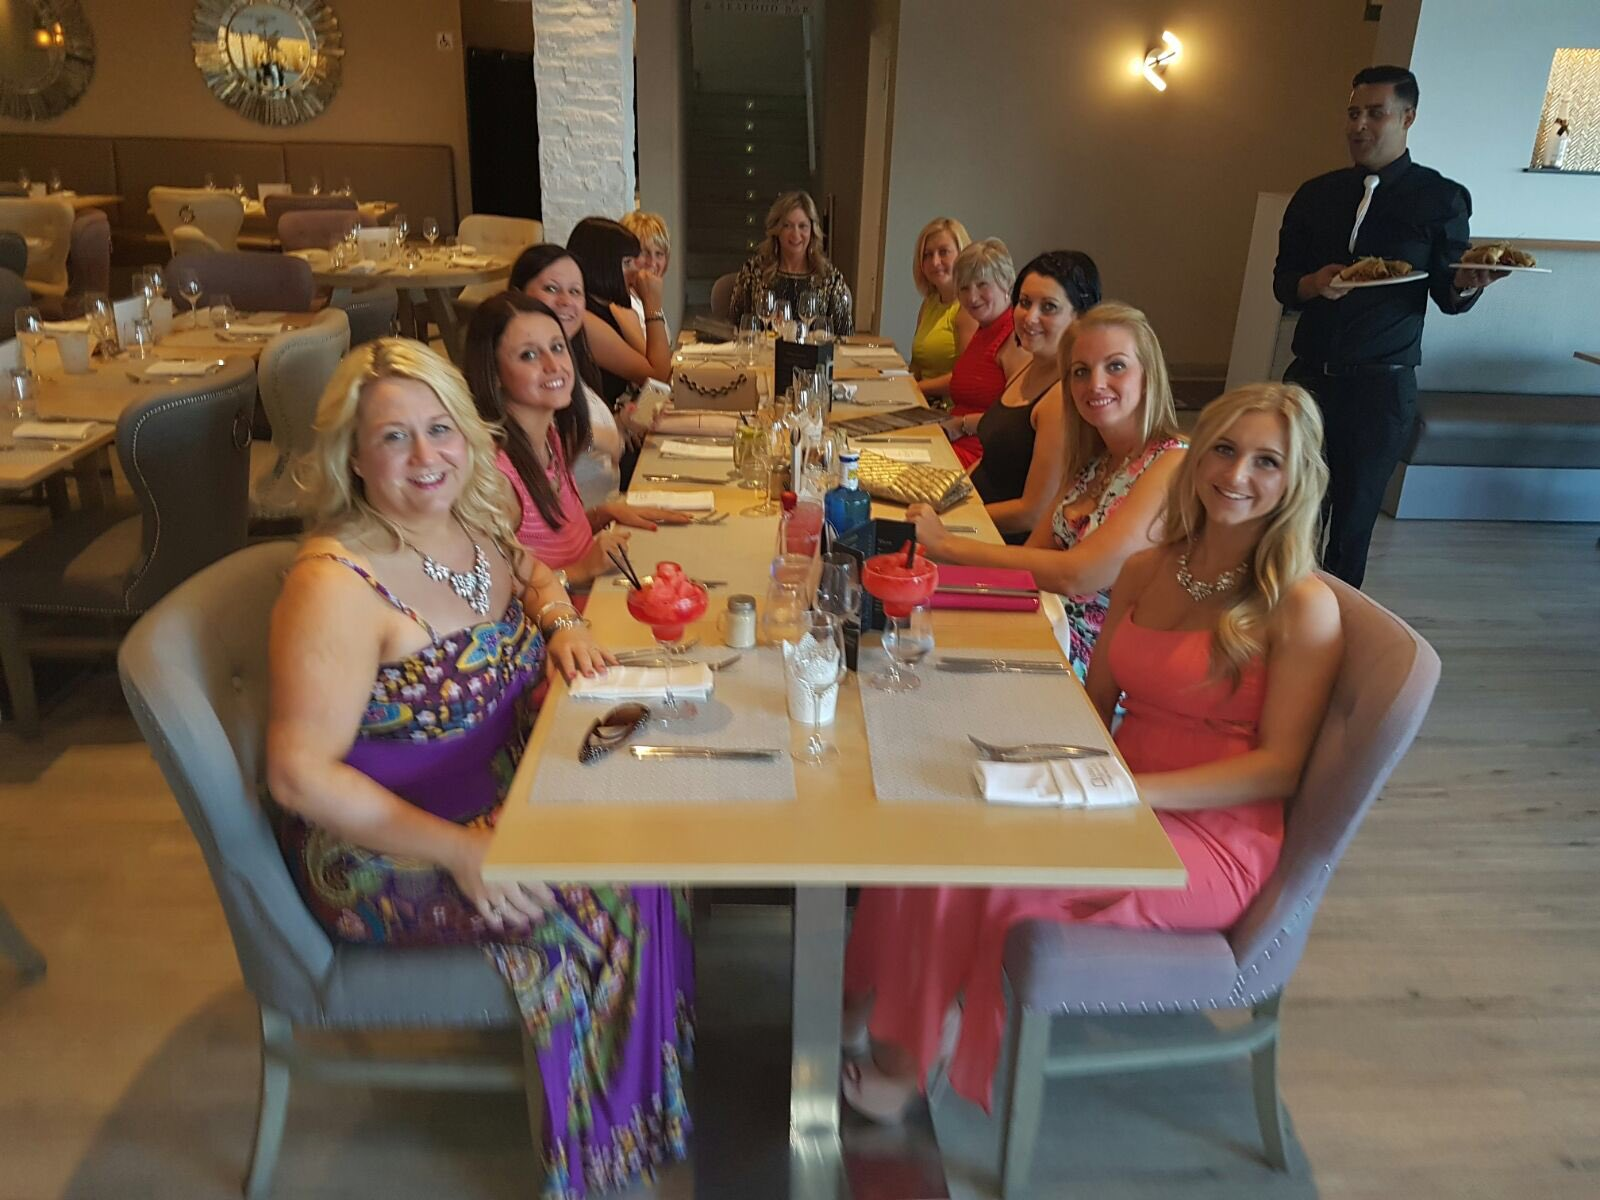 RT @hhhleachy: @elliottwright_ - amazing food & cocktails with the girls xx https://t.co/RQt57nxtUm